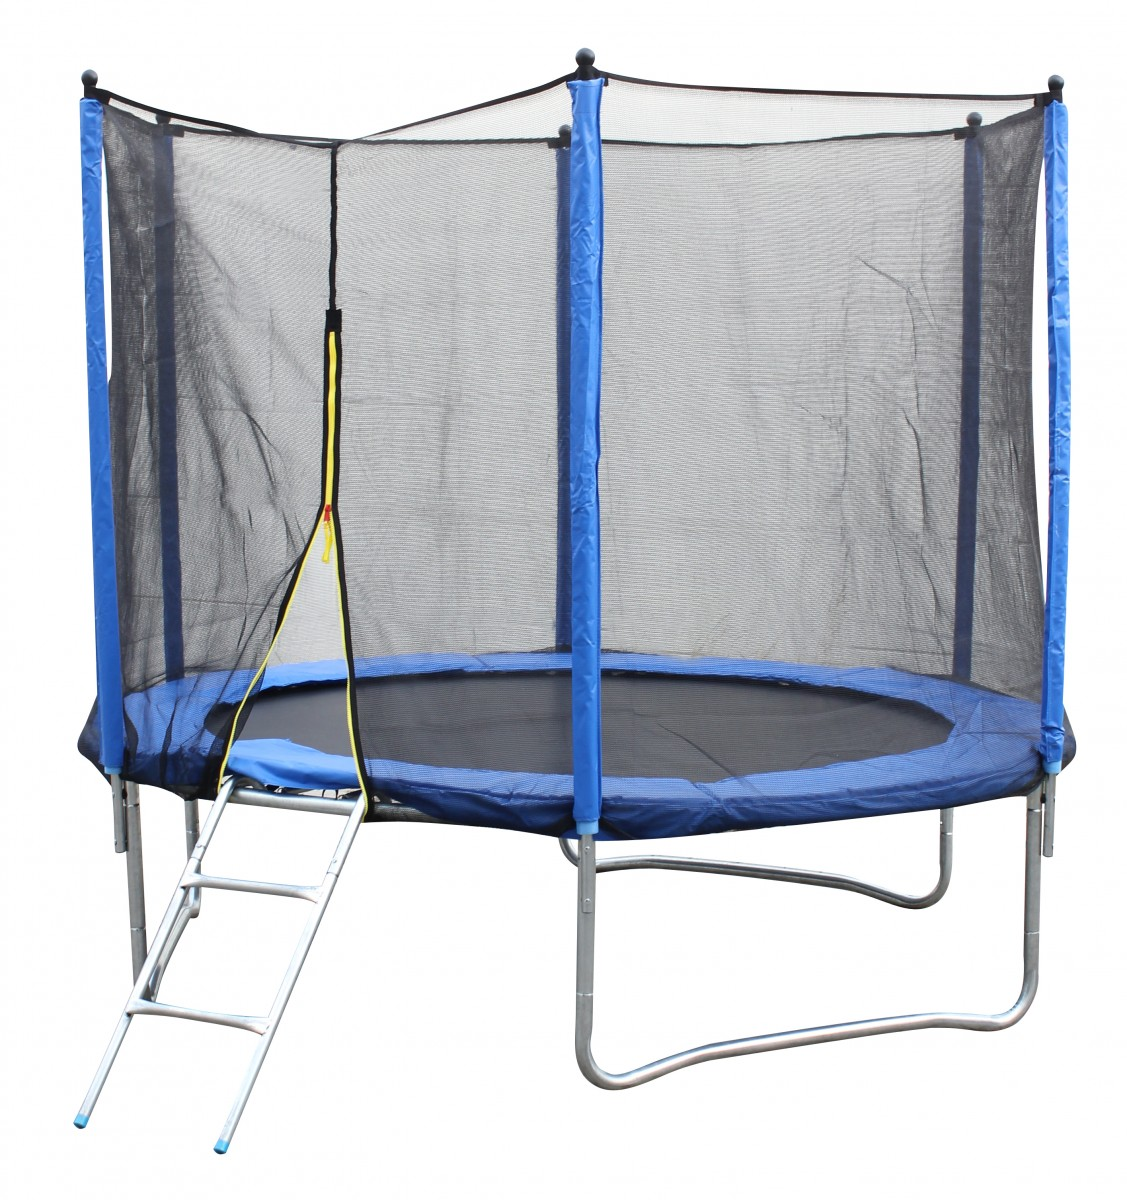 finebuy trampolin 244cm gartentrampolin komplettset leiter sicherheitsnetz ebay. Black Bedroom Furniture Sets. Home Design Ideas